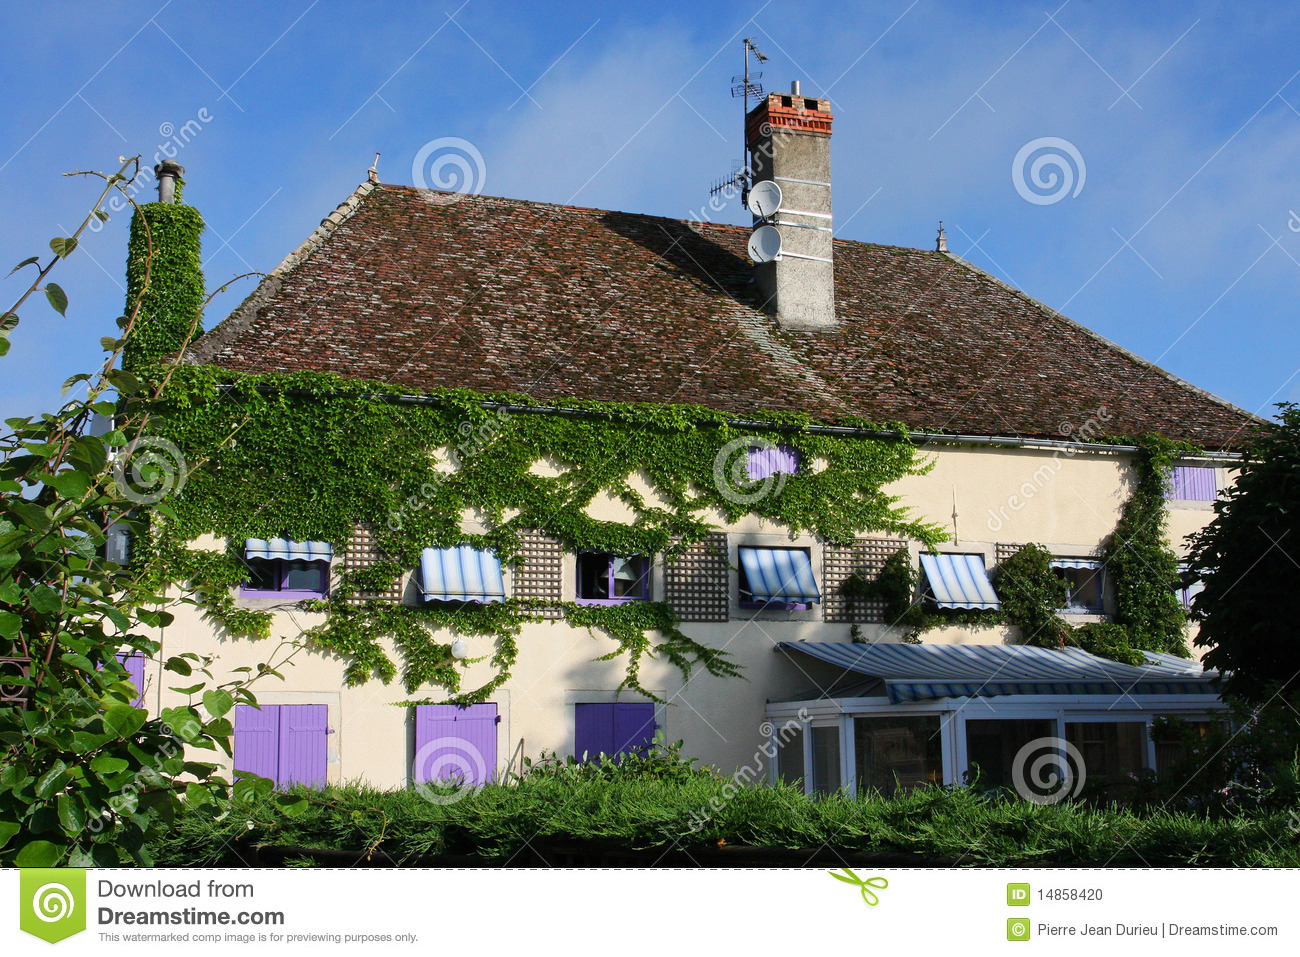 House in Burgundy